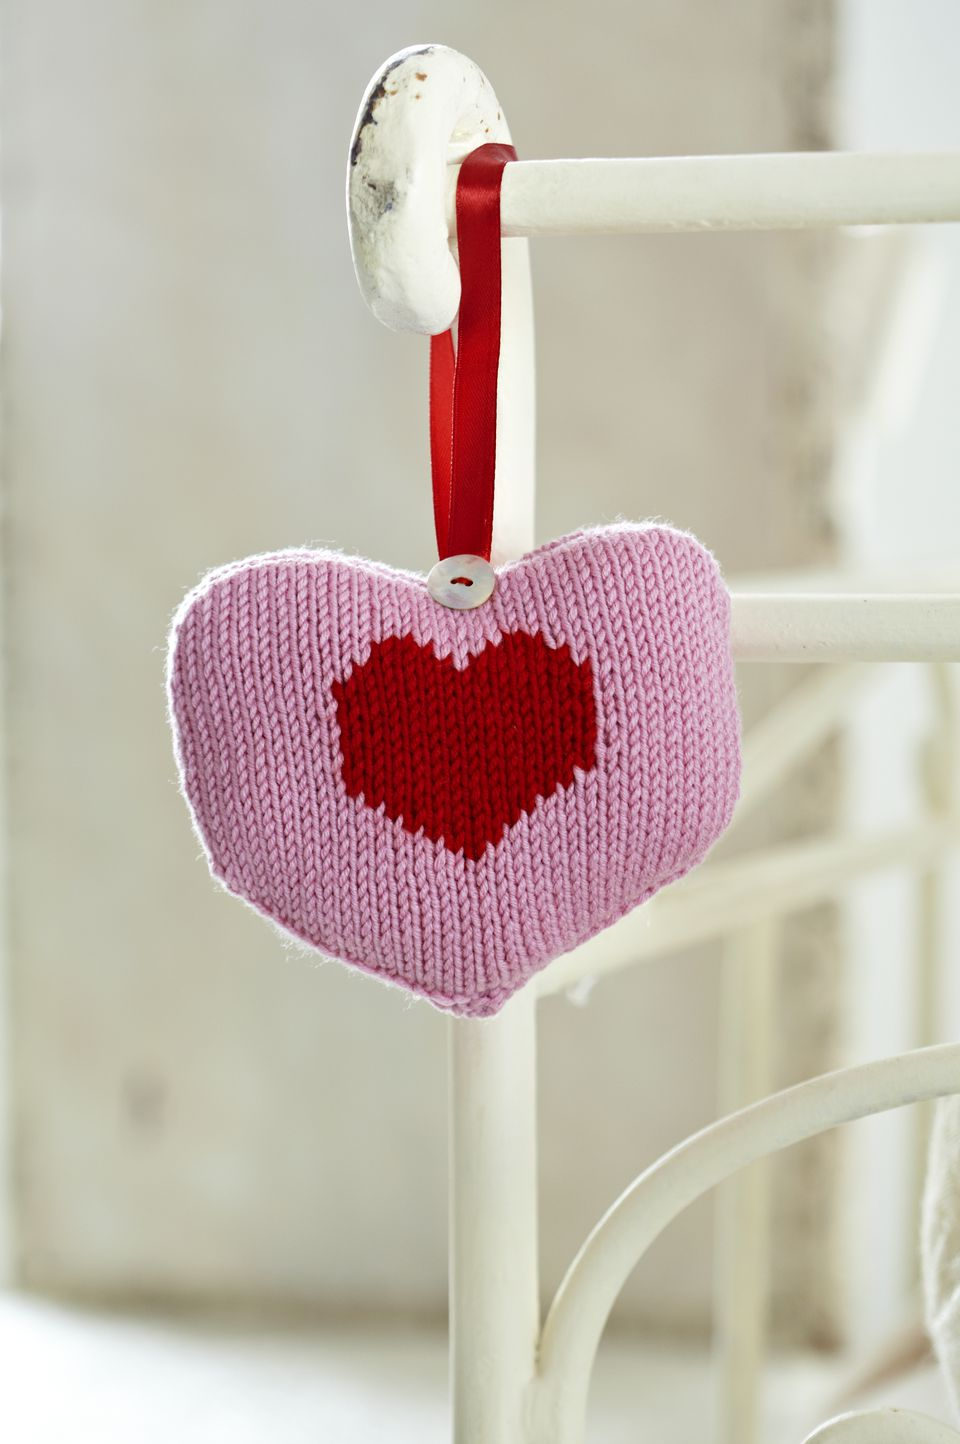 Knitted heart hanging by ribbon from bedstead, close-up